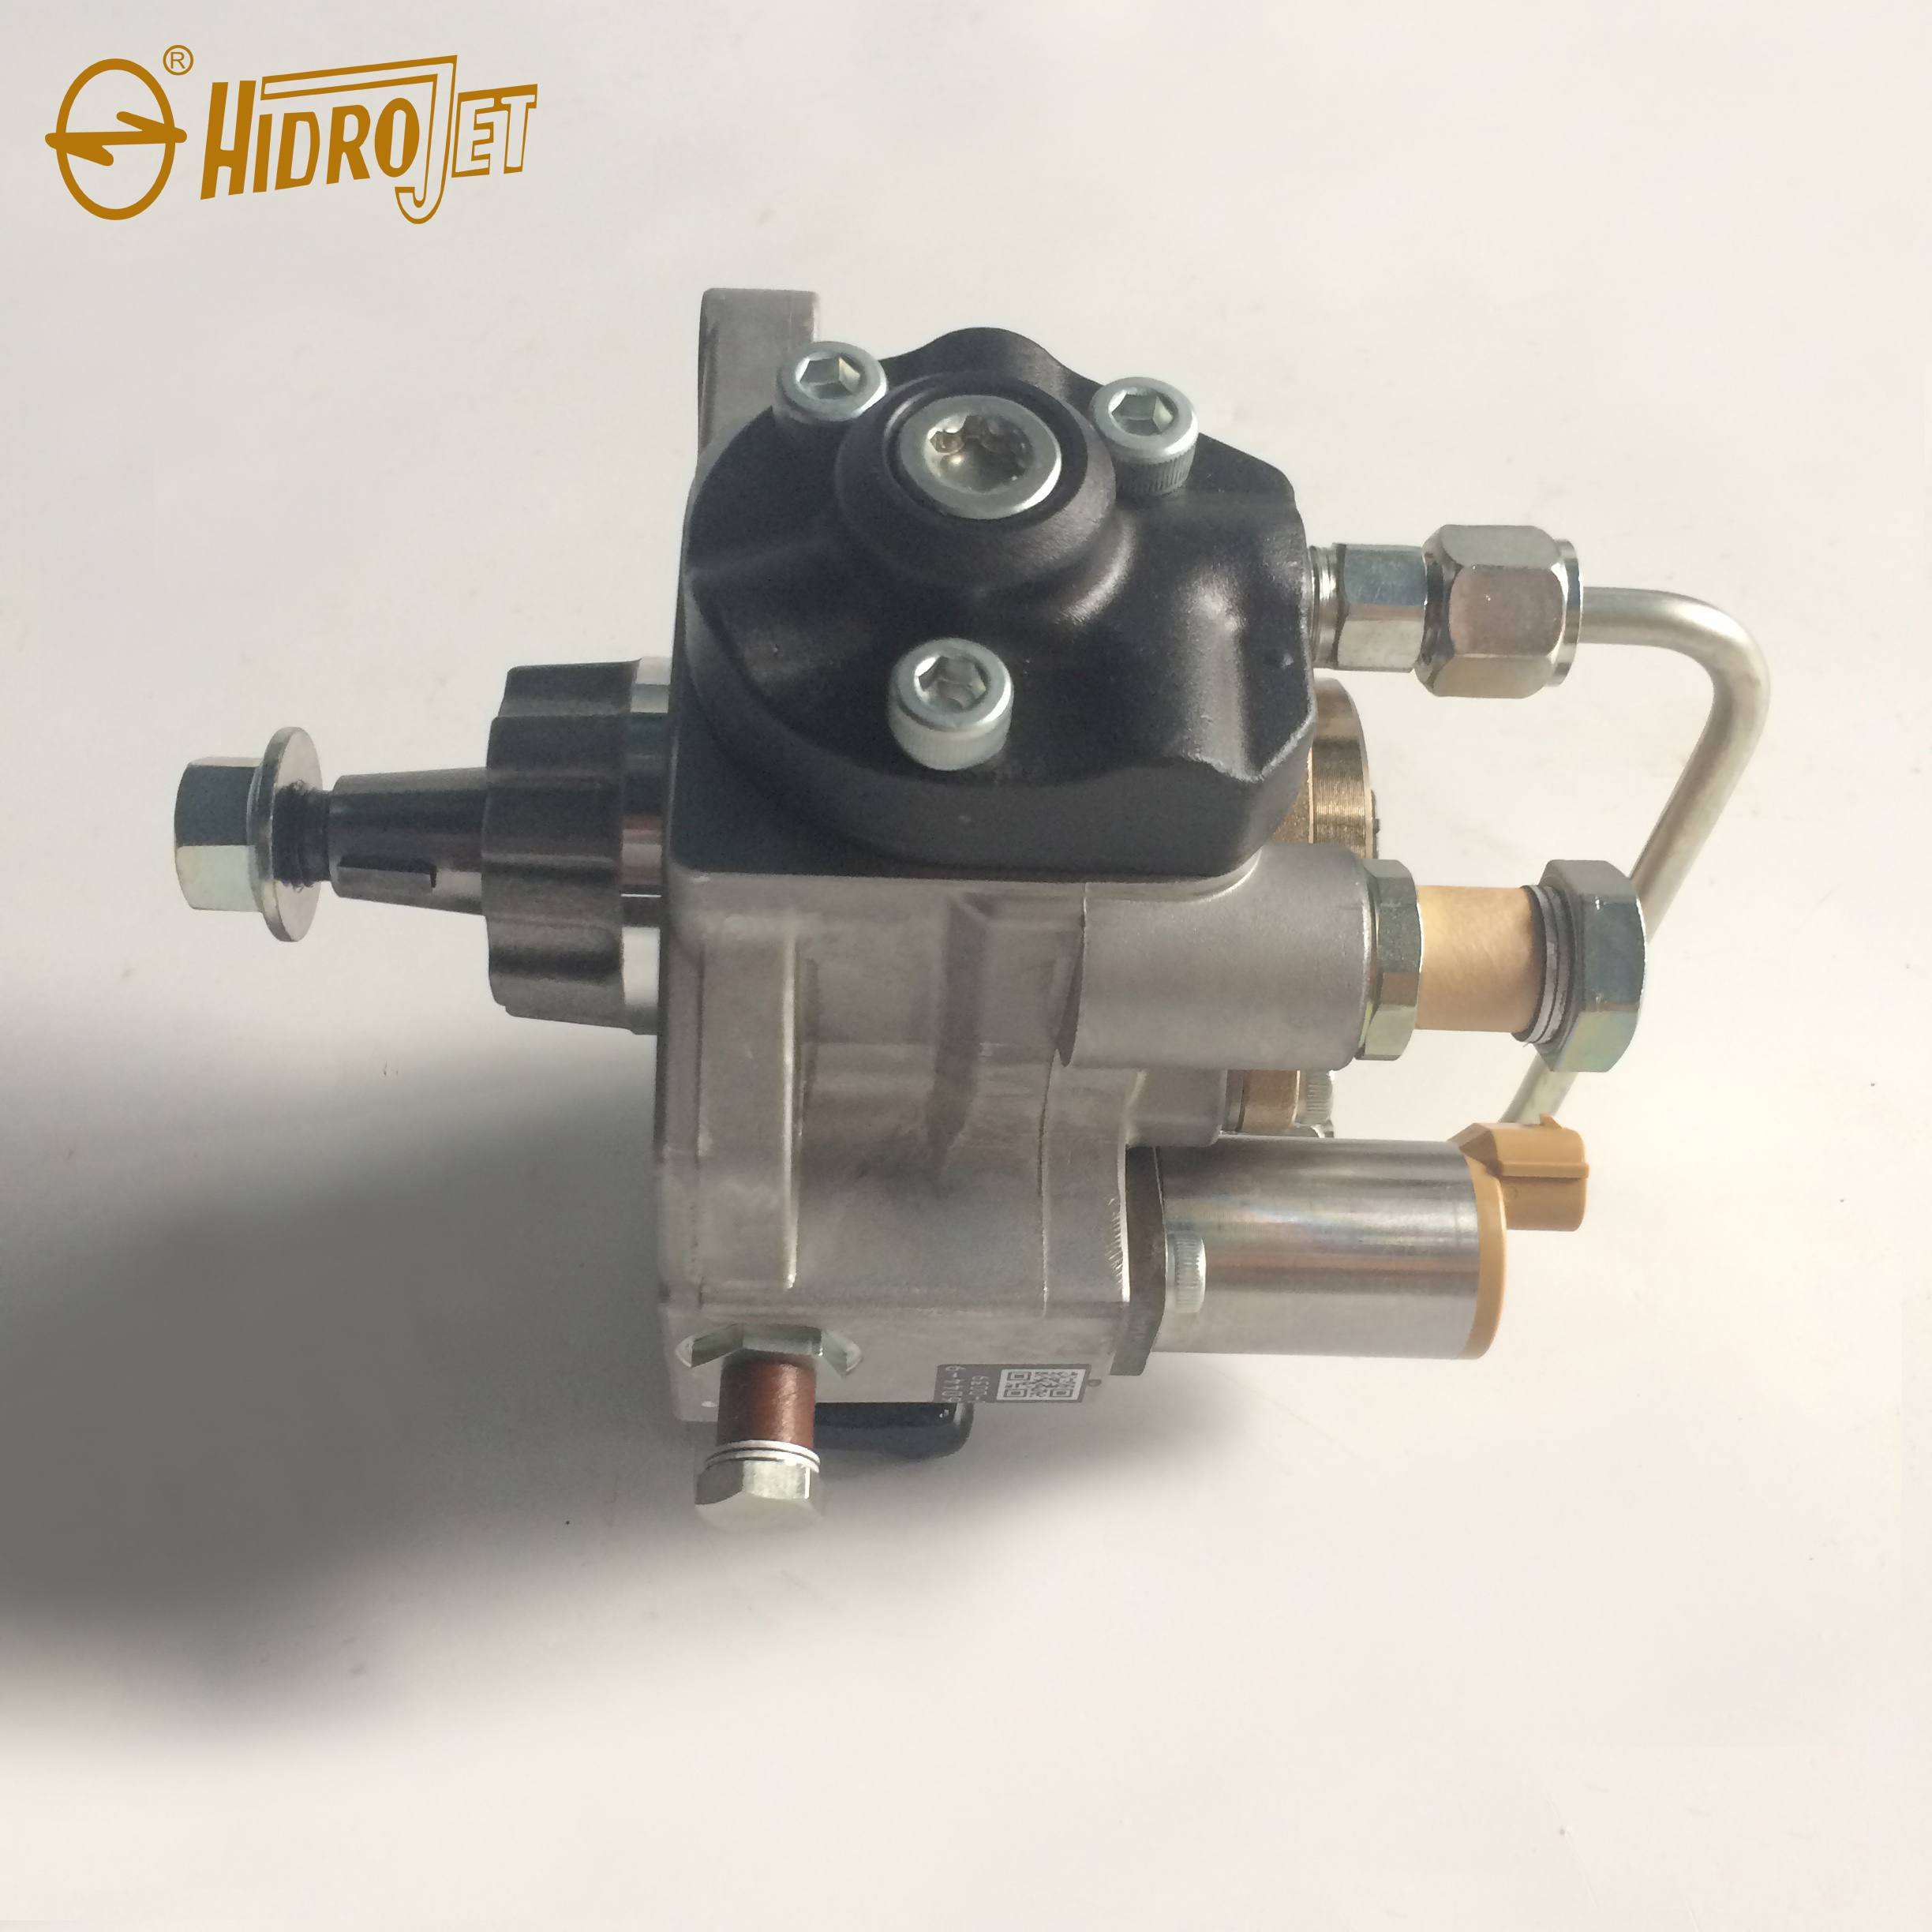 NEW <strong>ORIGINAL</strong> Fuel injection pump 897306044-9 (294000-0039) for 4HK1 common rail pump